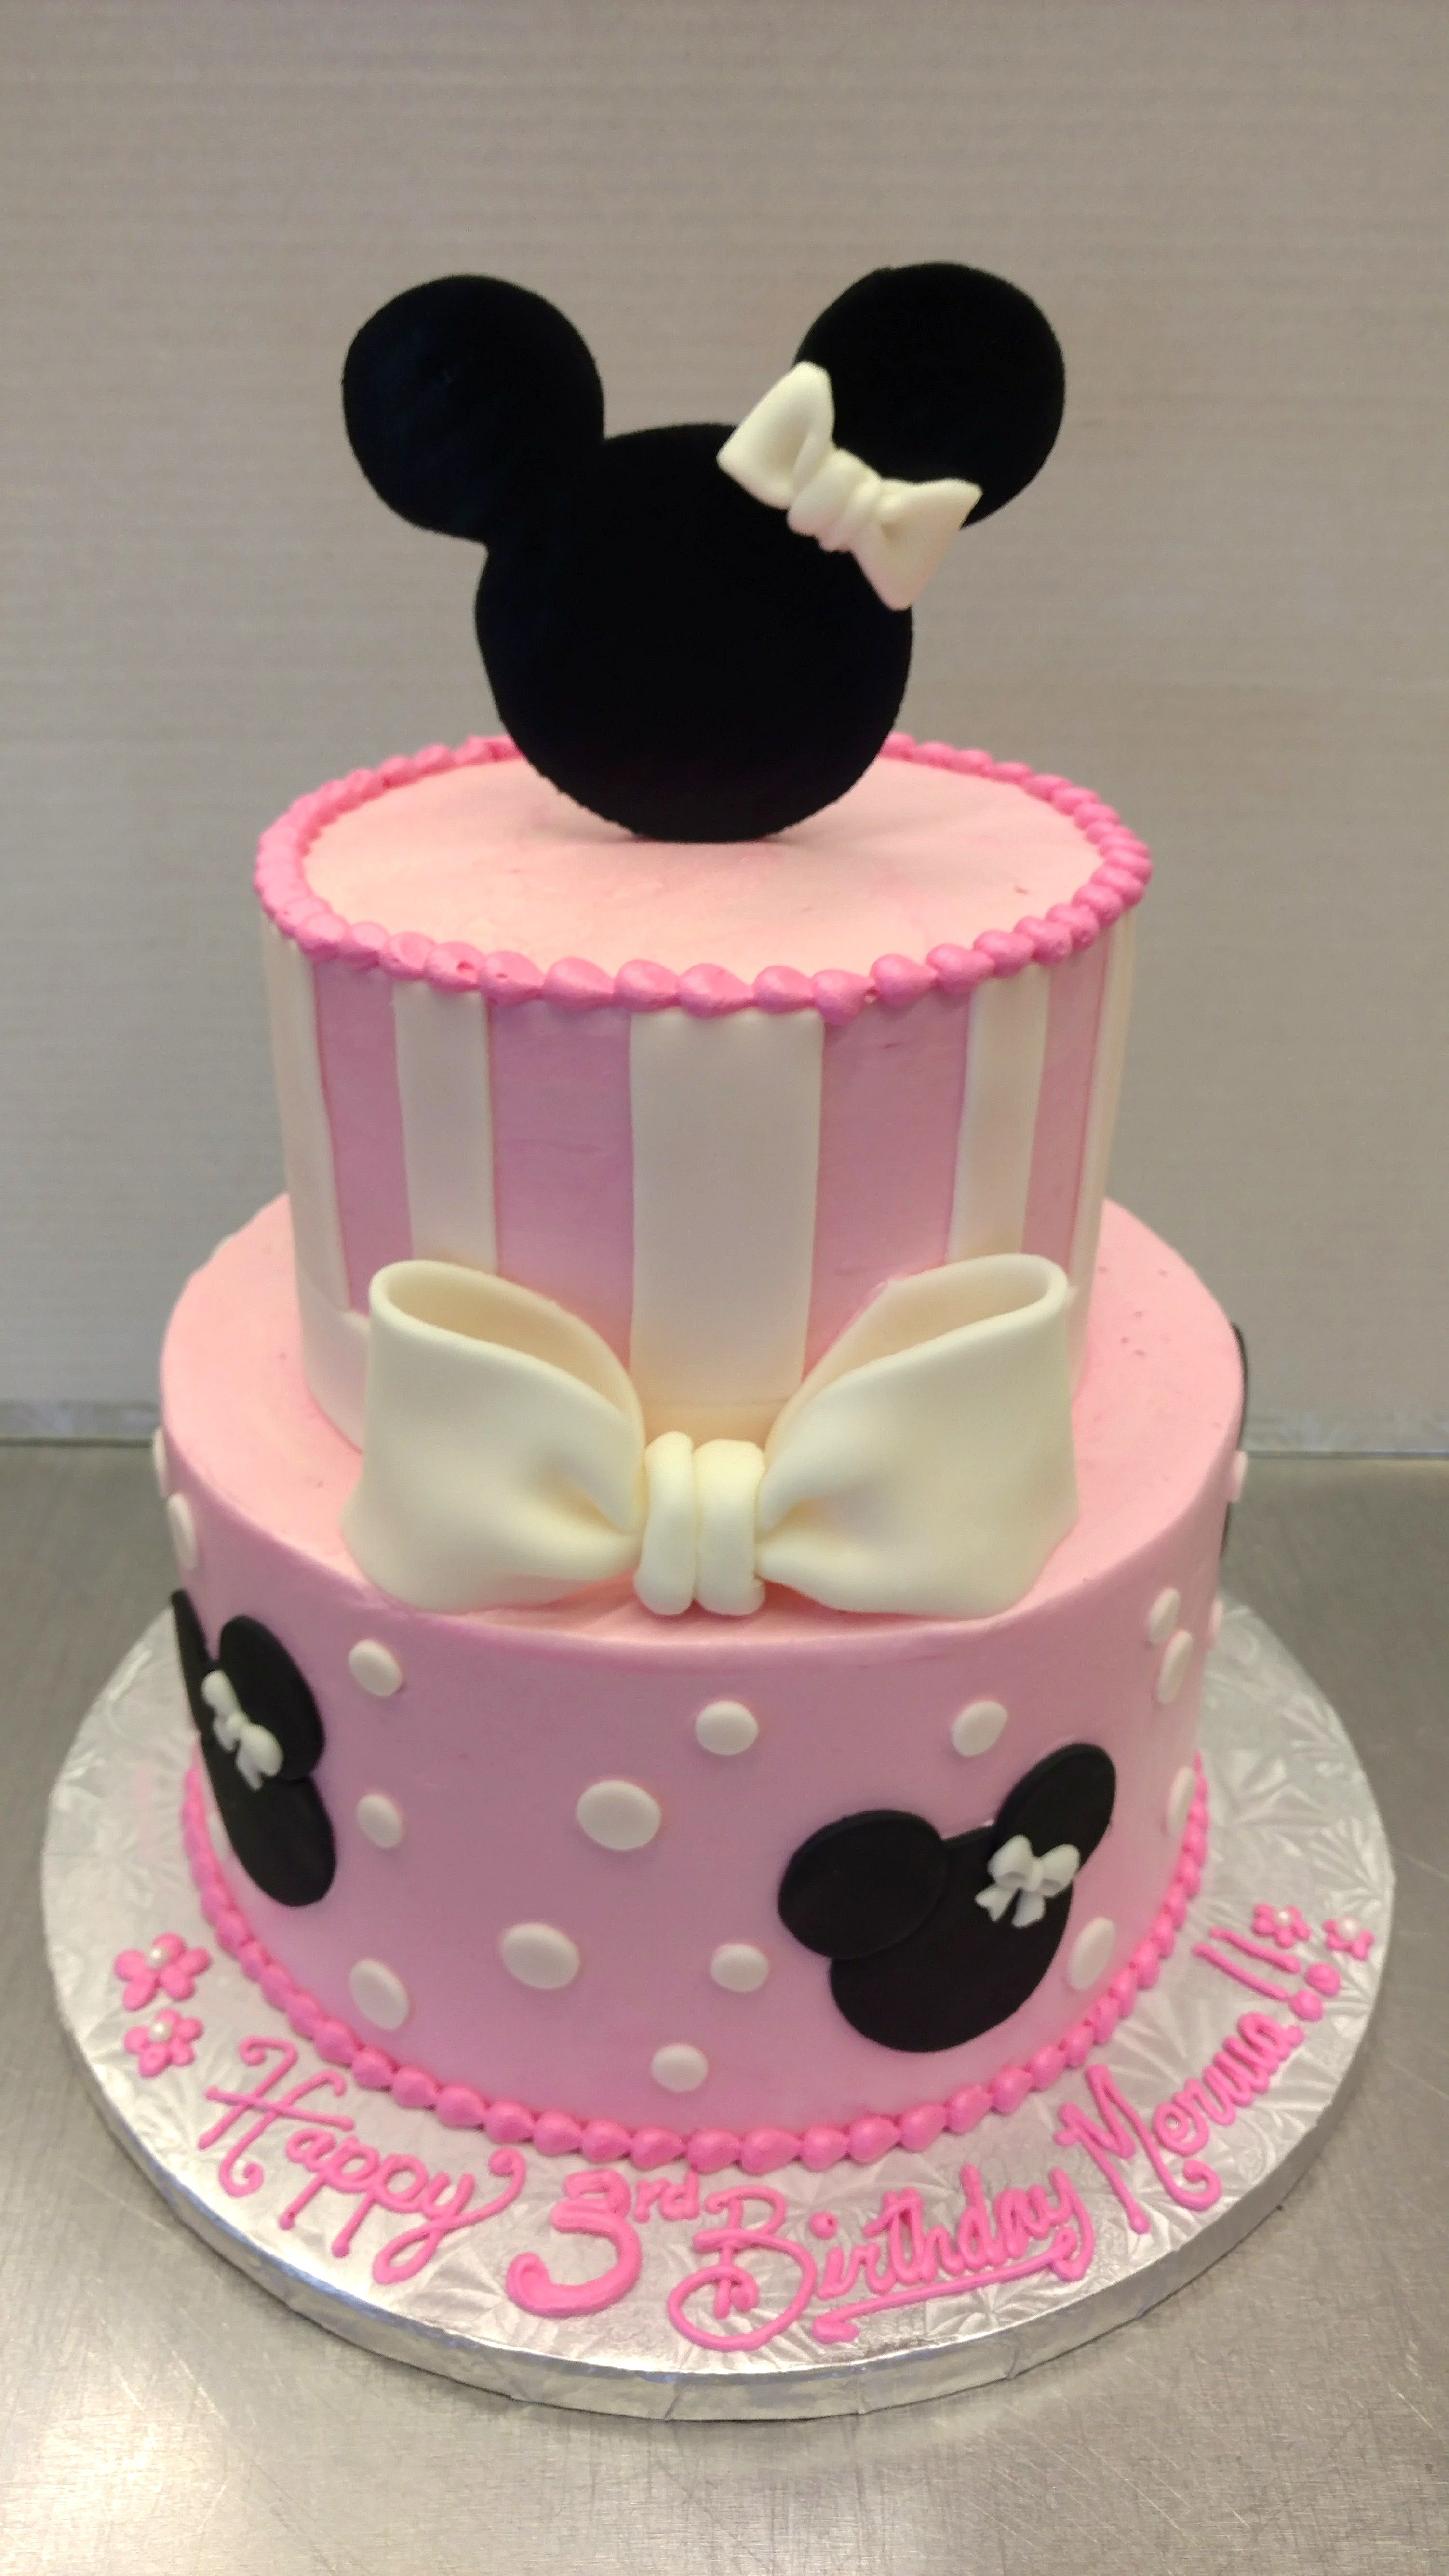 Minnie Mouse Themed Birthday Cake From Our European Bakery